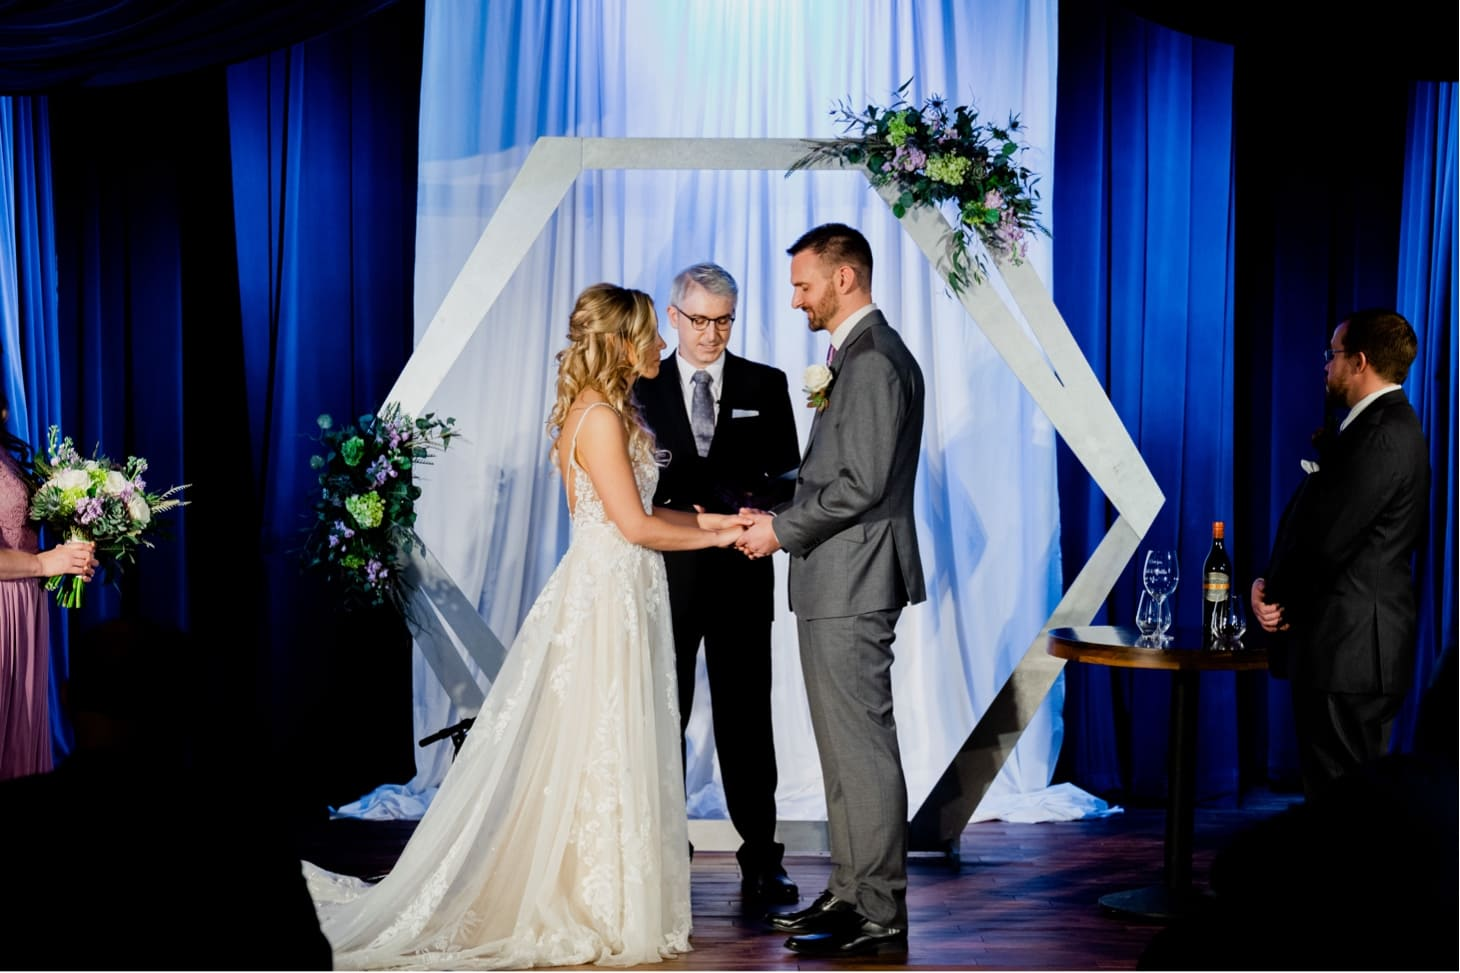 wedding ceremony at noce downtown des moines